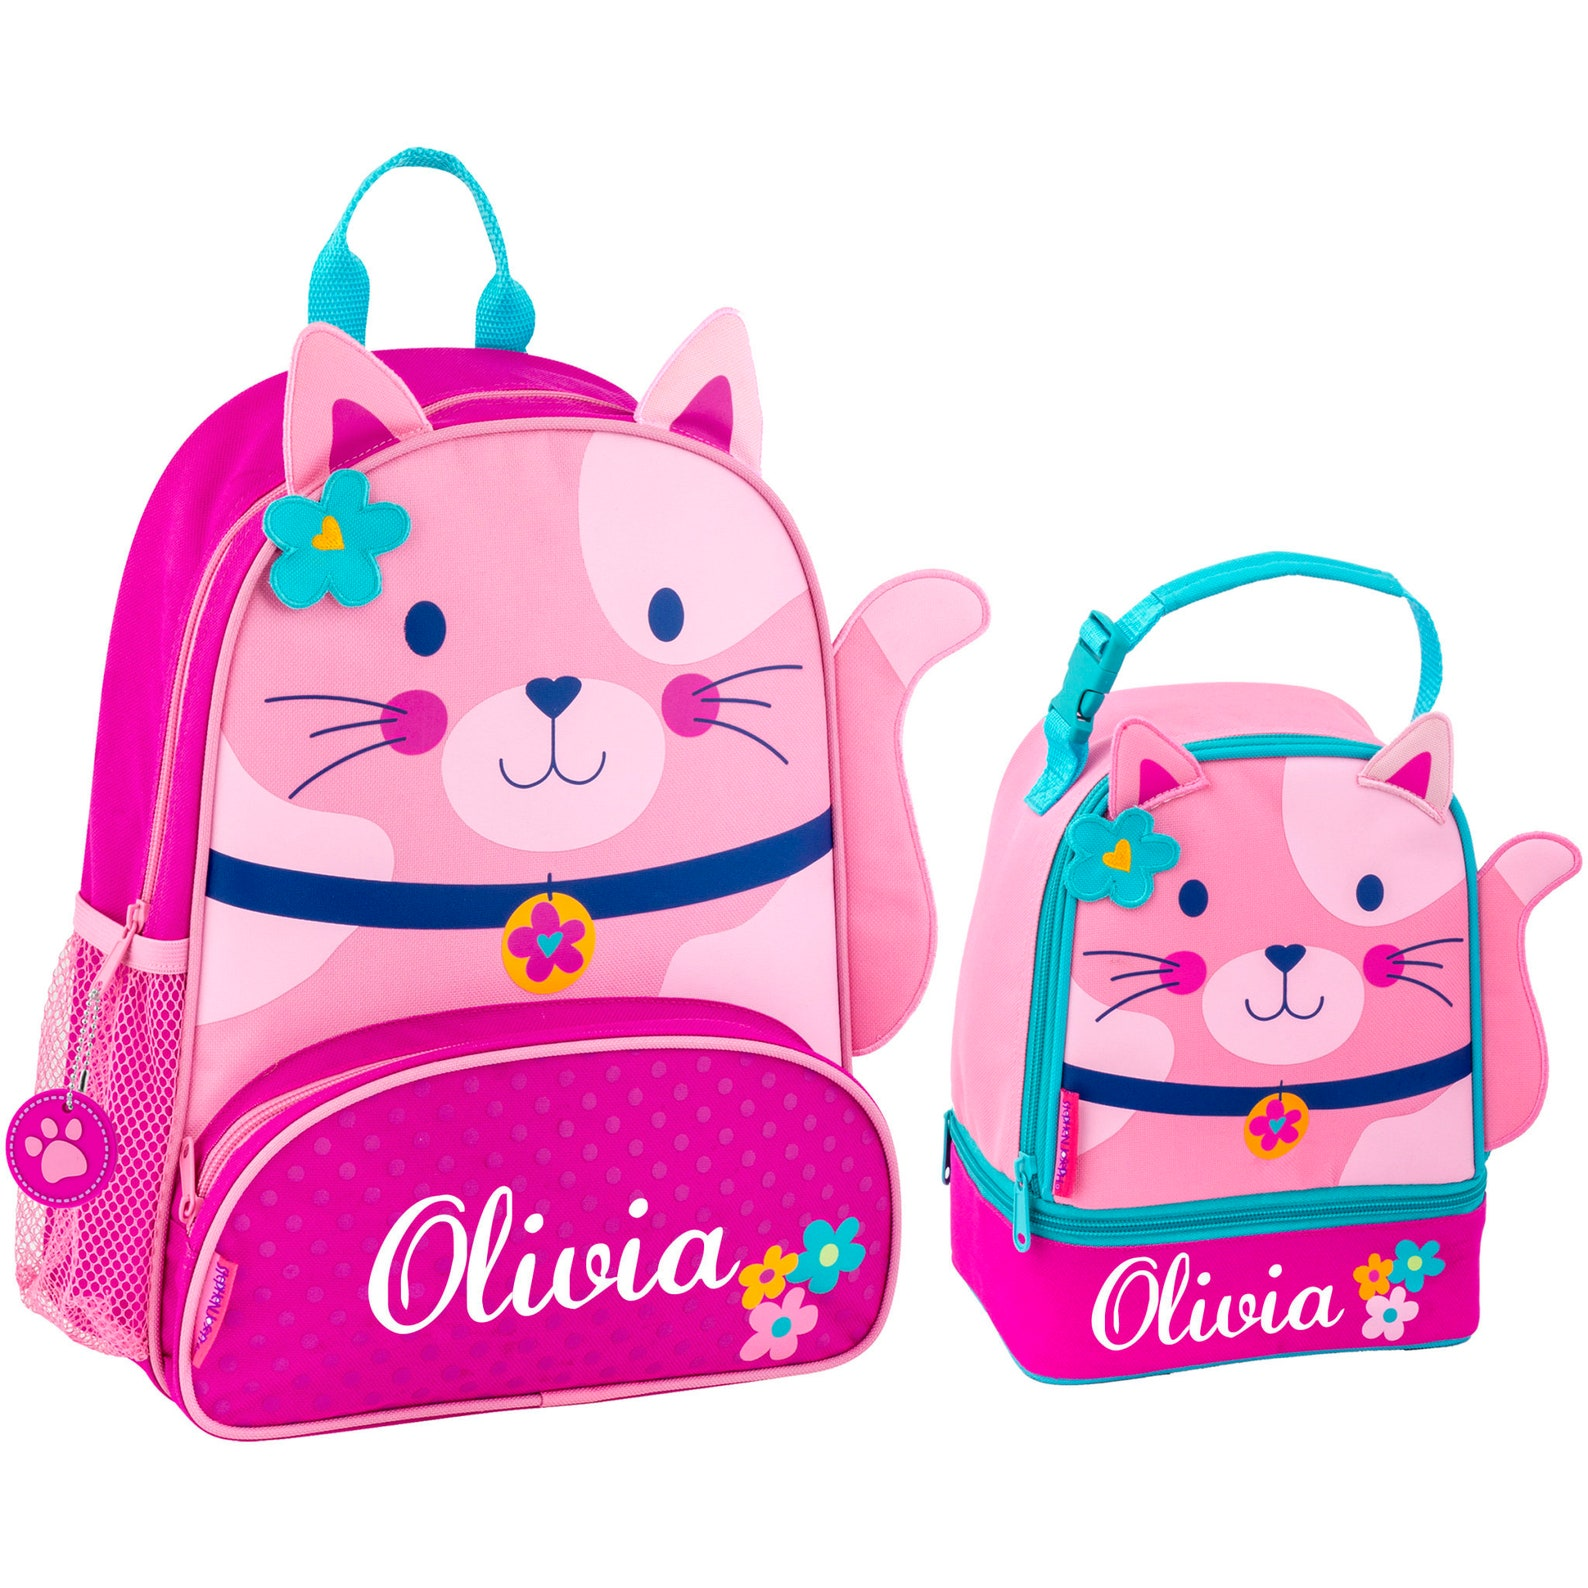 Kids Personalized Cat Backpack and Lunchbox